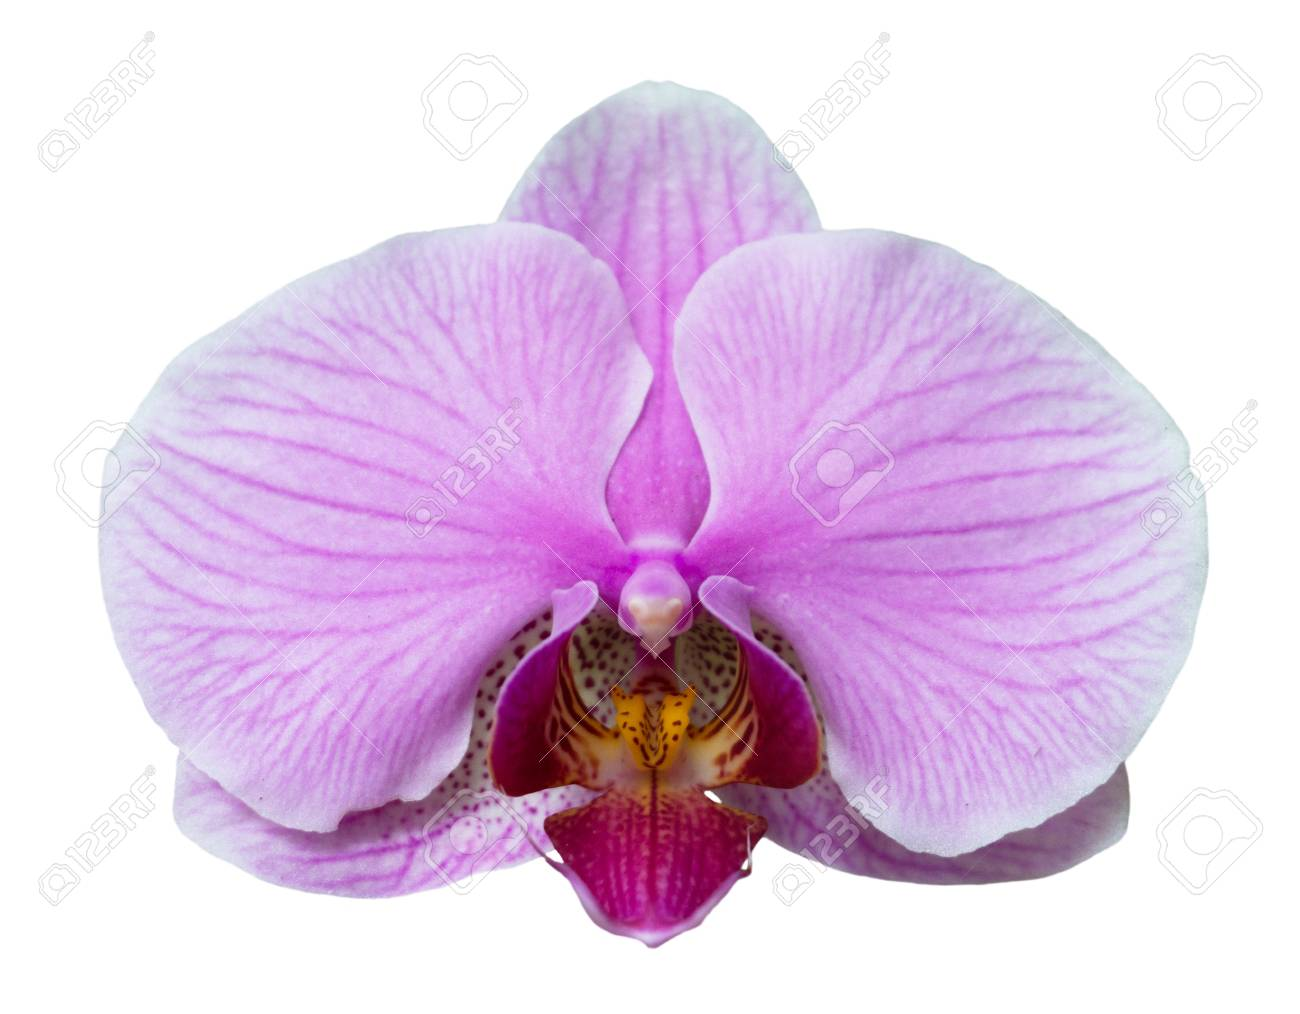 Orchid Isolated On White Background Single Flower With Lilac